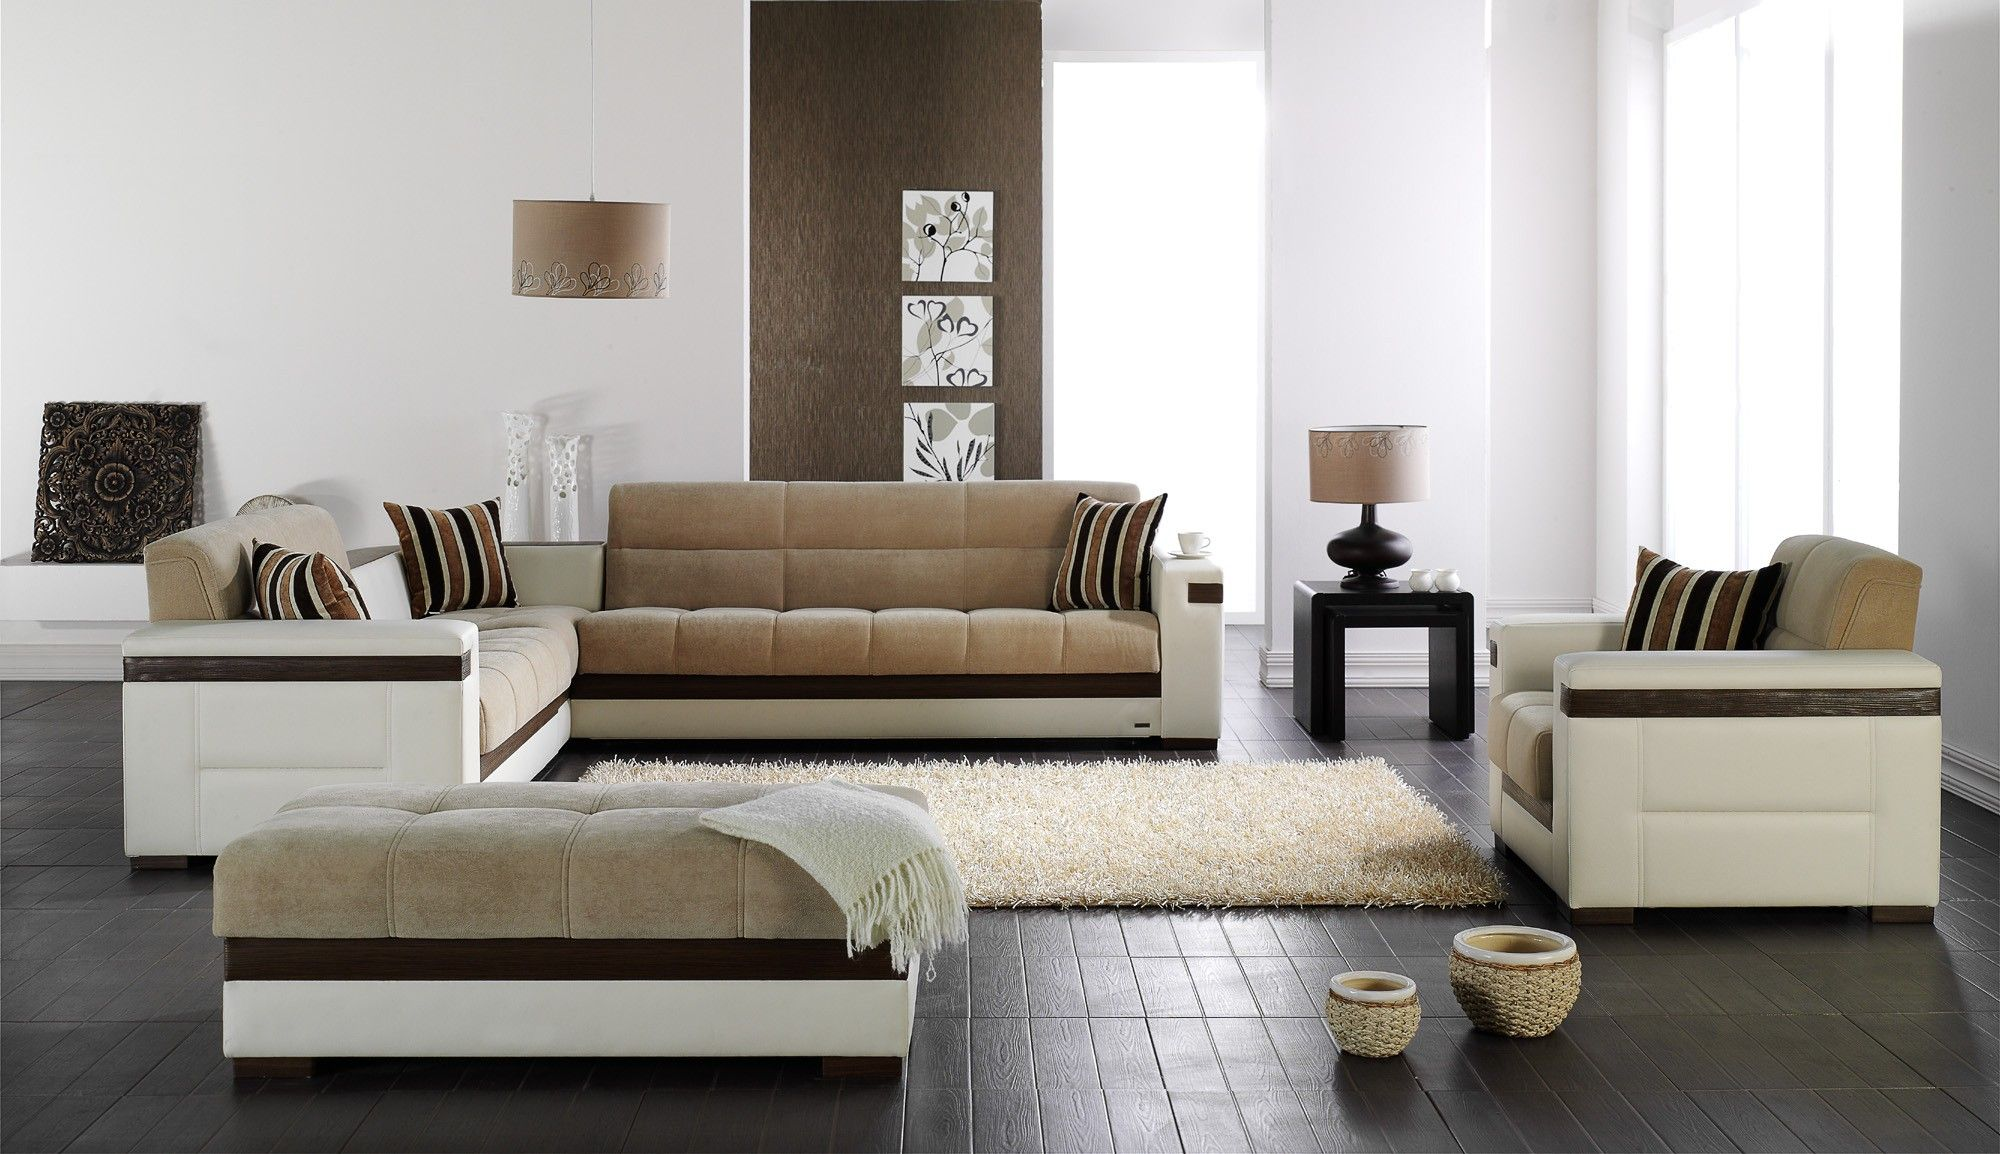 Living Room Furniture Long Island Decoration In India Fascinating Modern With Layout New